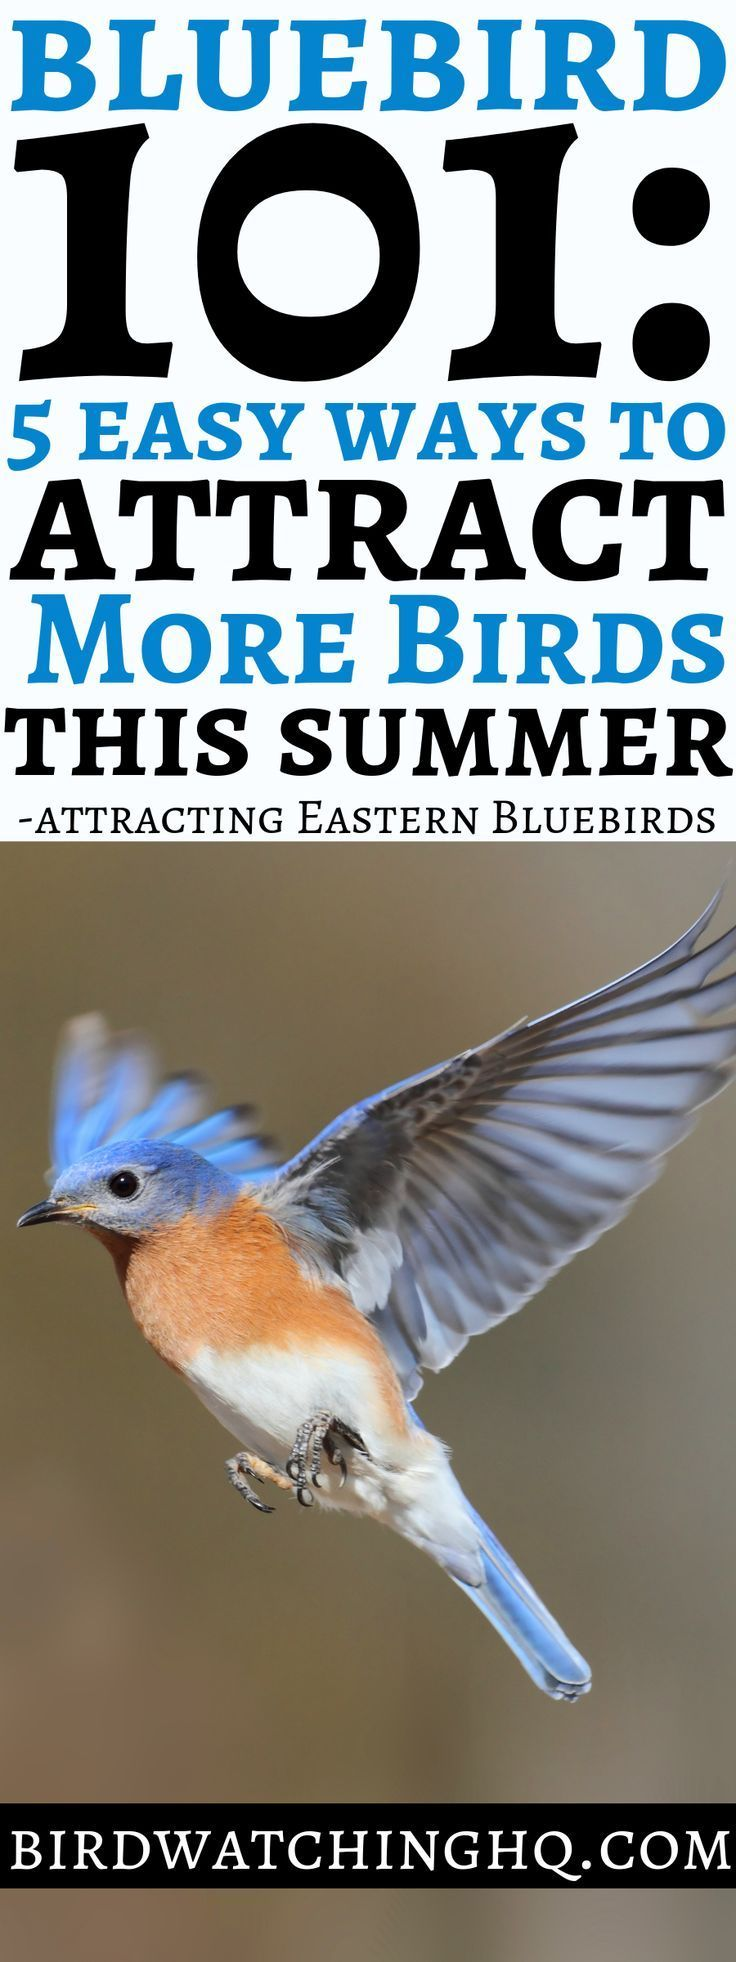 How to attract bluebirds 6 proven tips 2020 blue bird